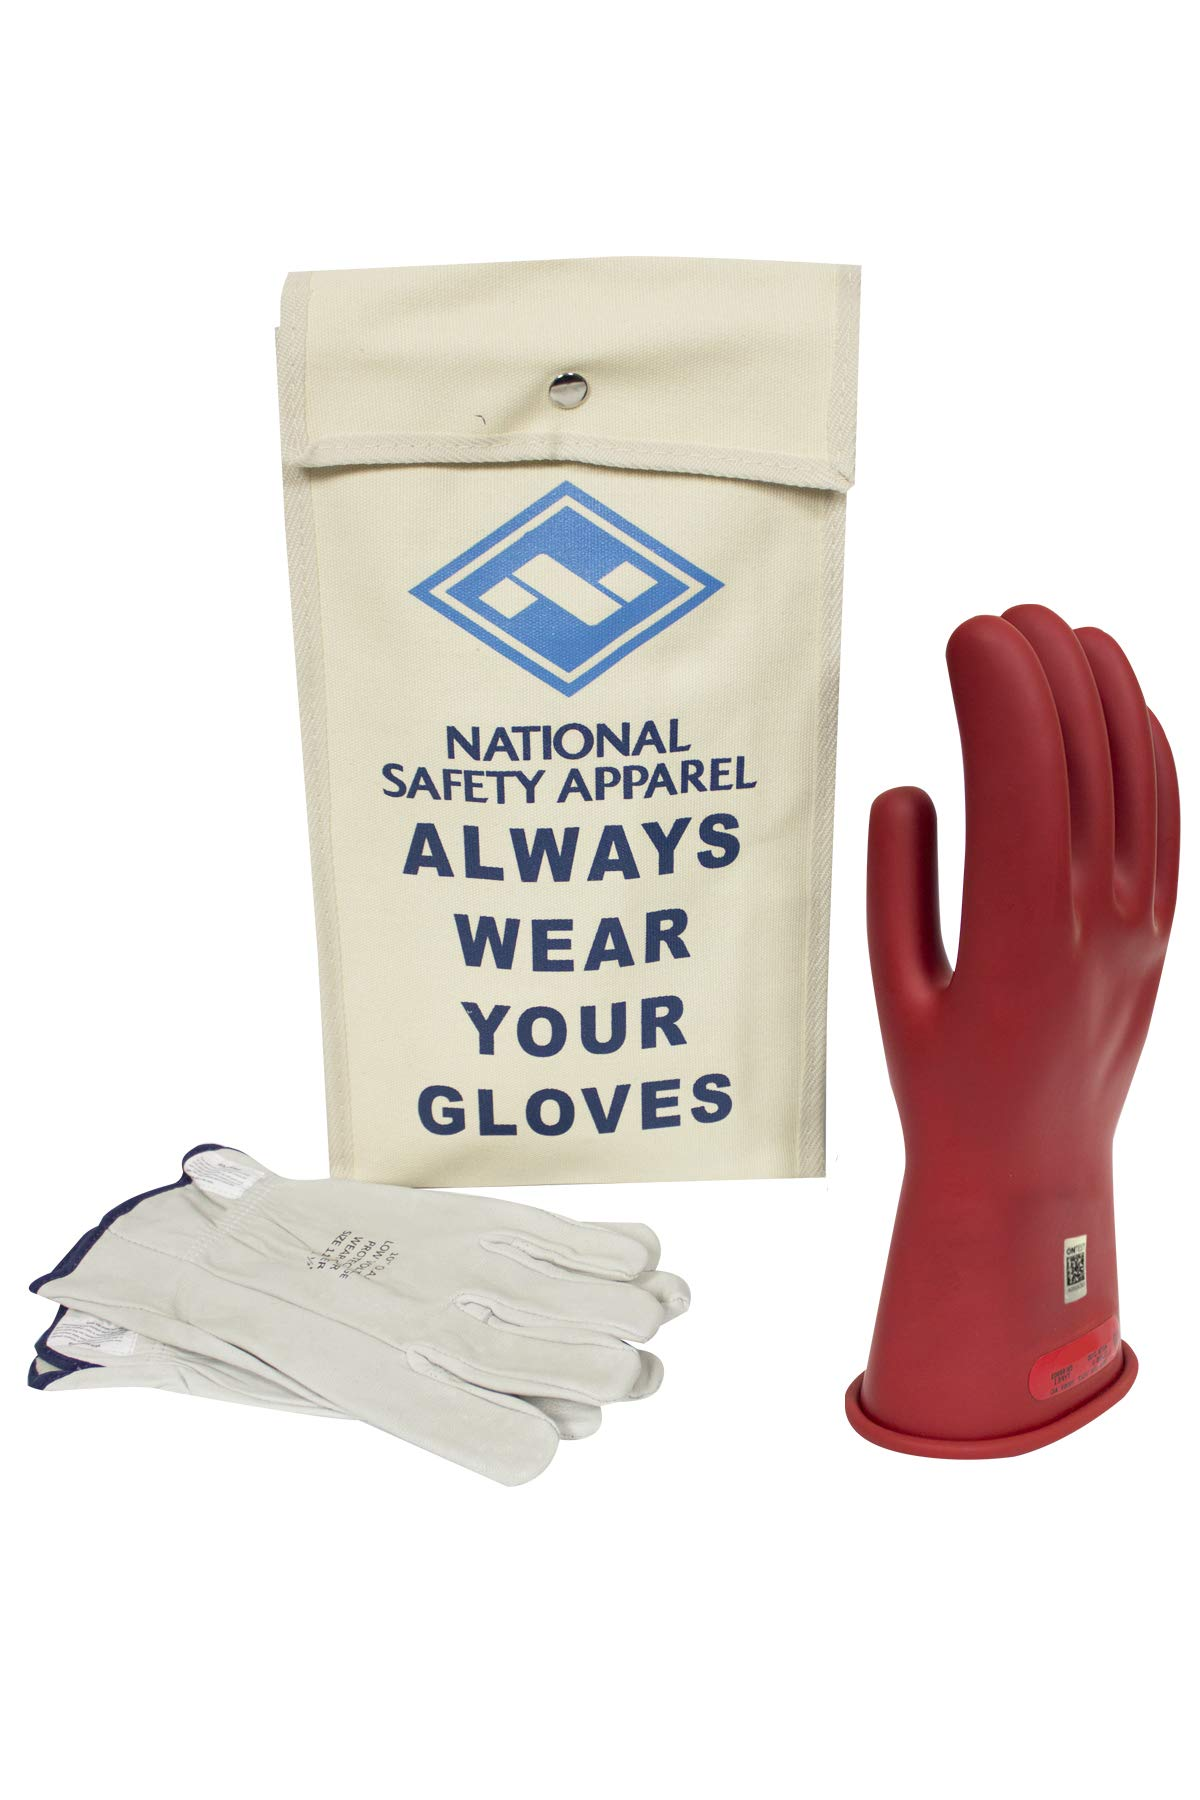 National Safety Apparel Class 0 Red Rubber Voltage Insulating Glove Kit with Leather Protectors, Max. Use Voltage 1,000V AC/ 1,500V DC (KITGC010R)